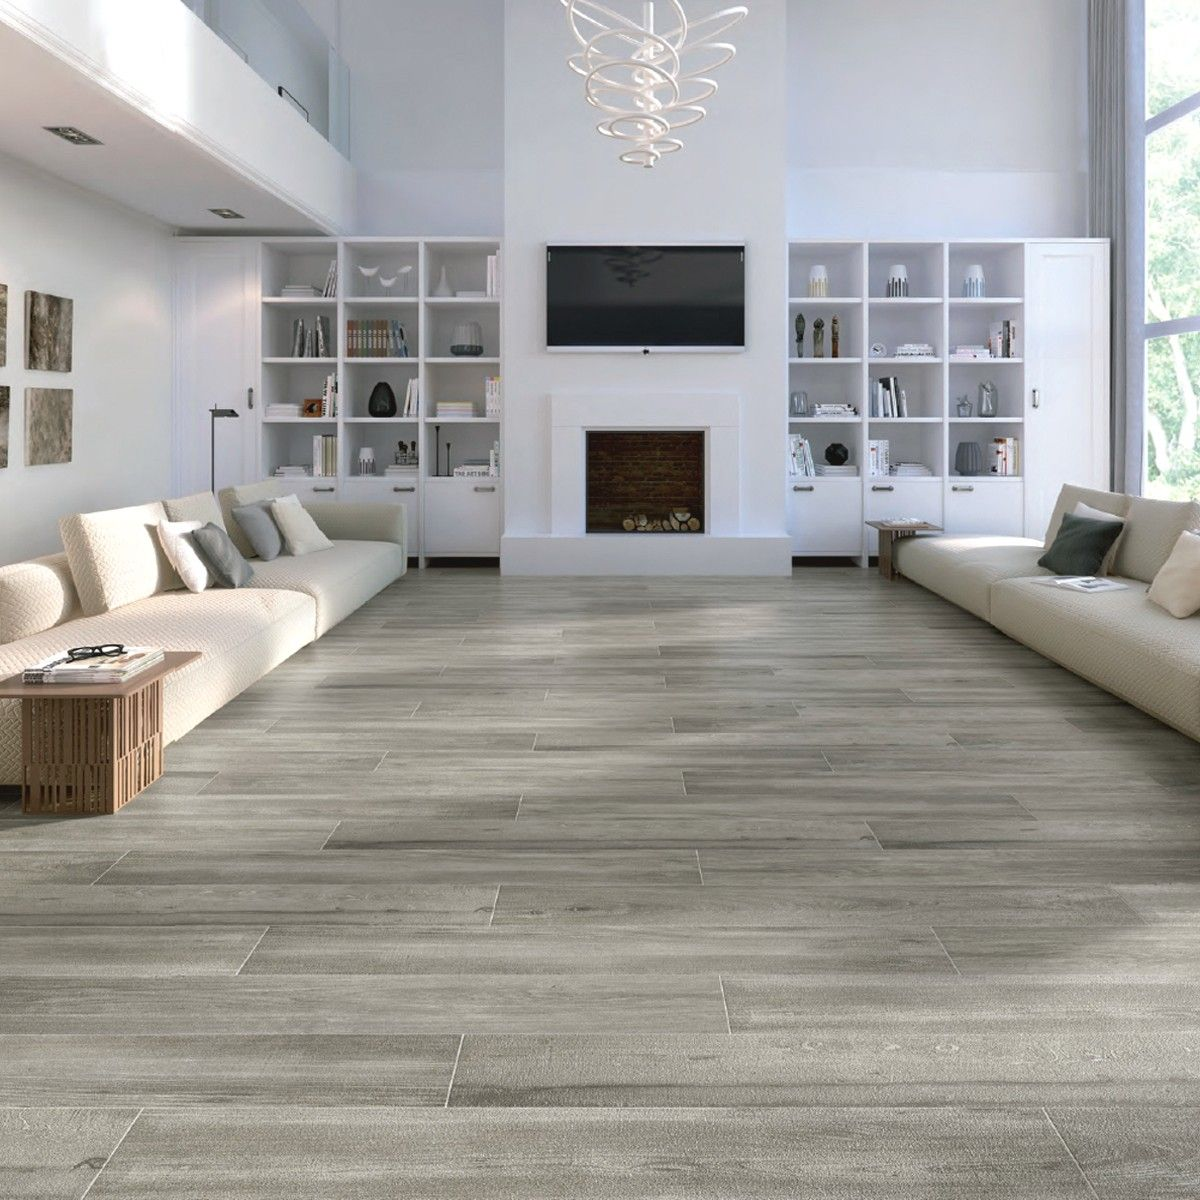 120x23 calgary taupe wall tiles tile choice beach condo renovations inspiration - Wall taupe ...